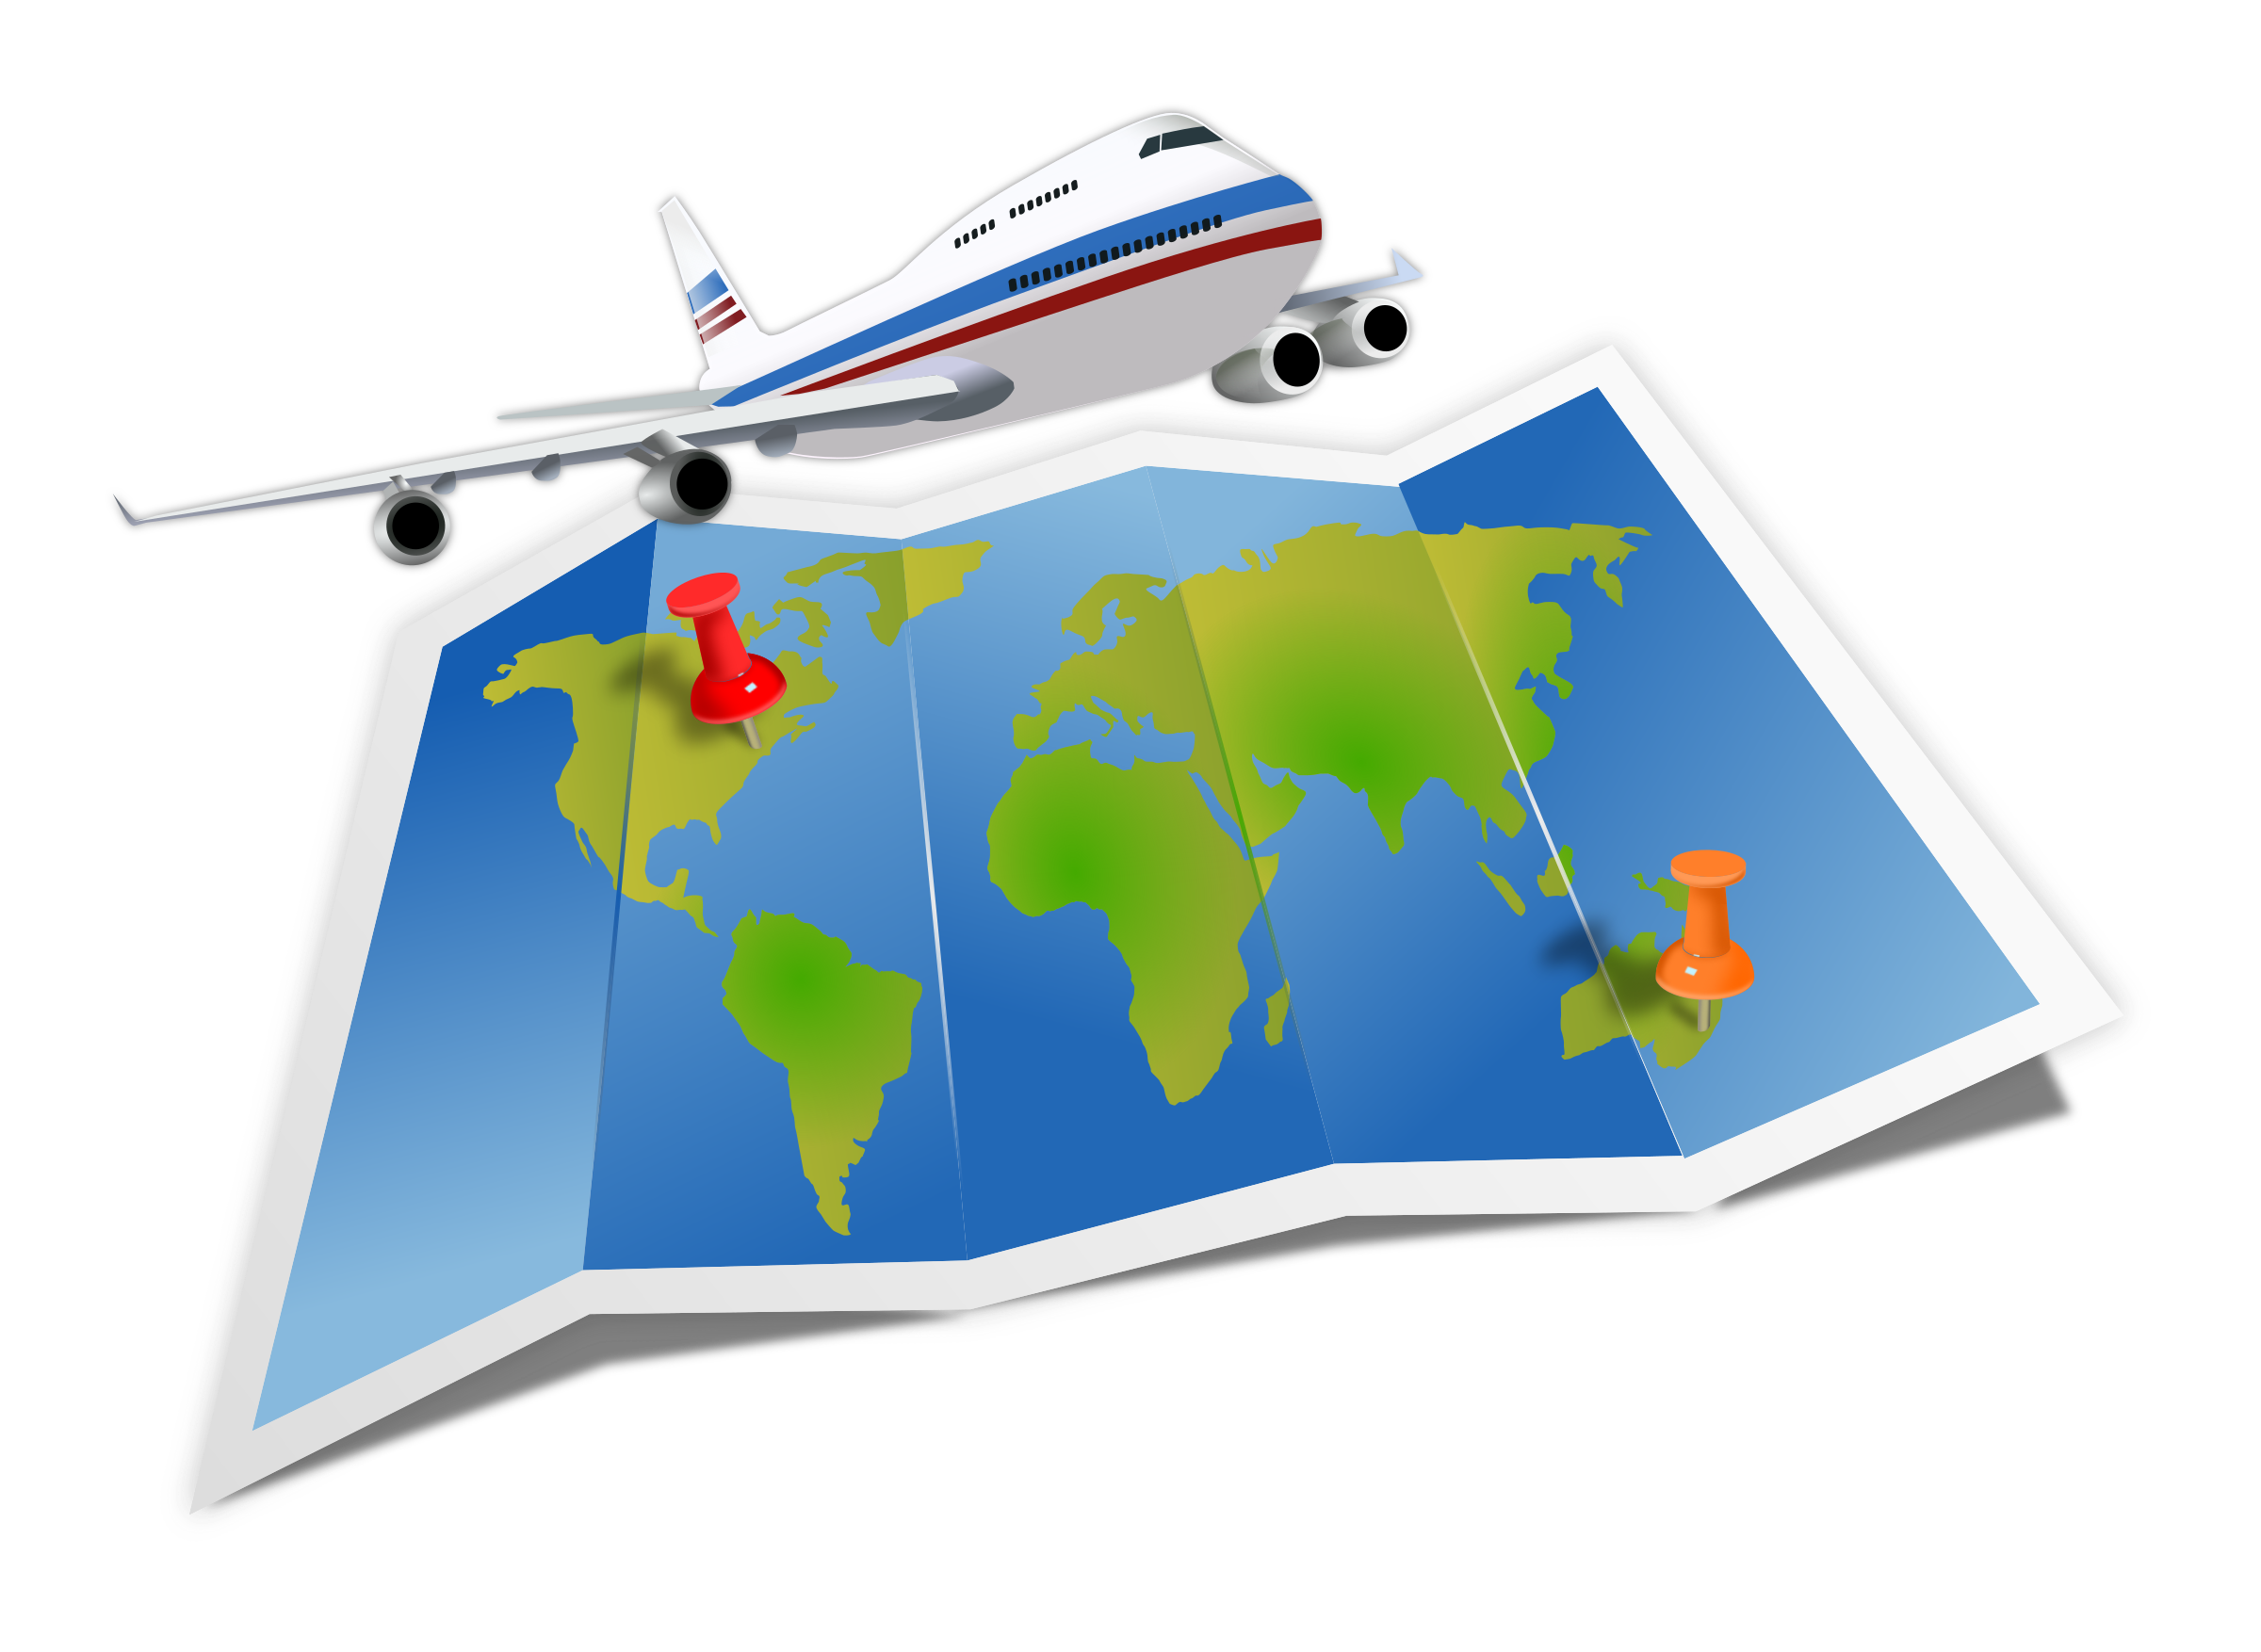 clipart travel map rh openclipart org travel clip art travel clipart free download